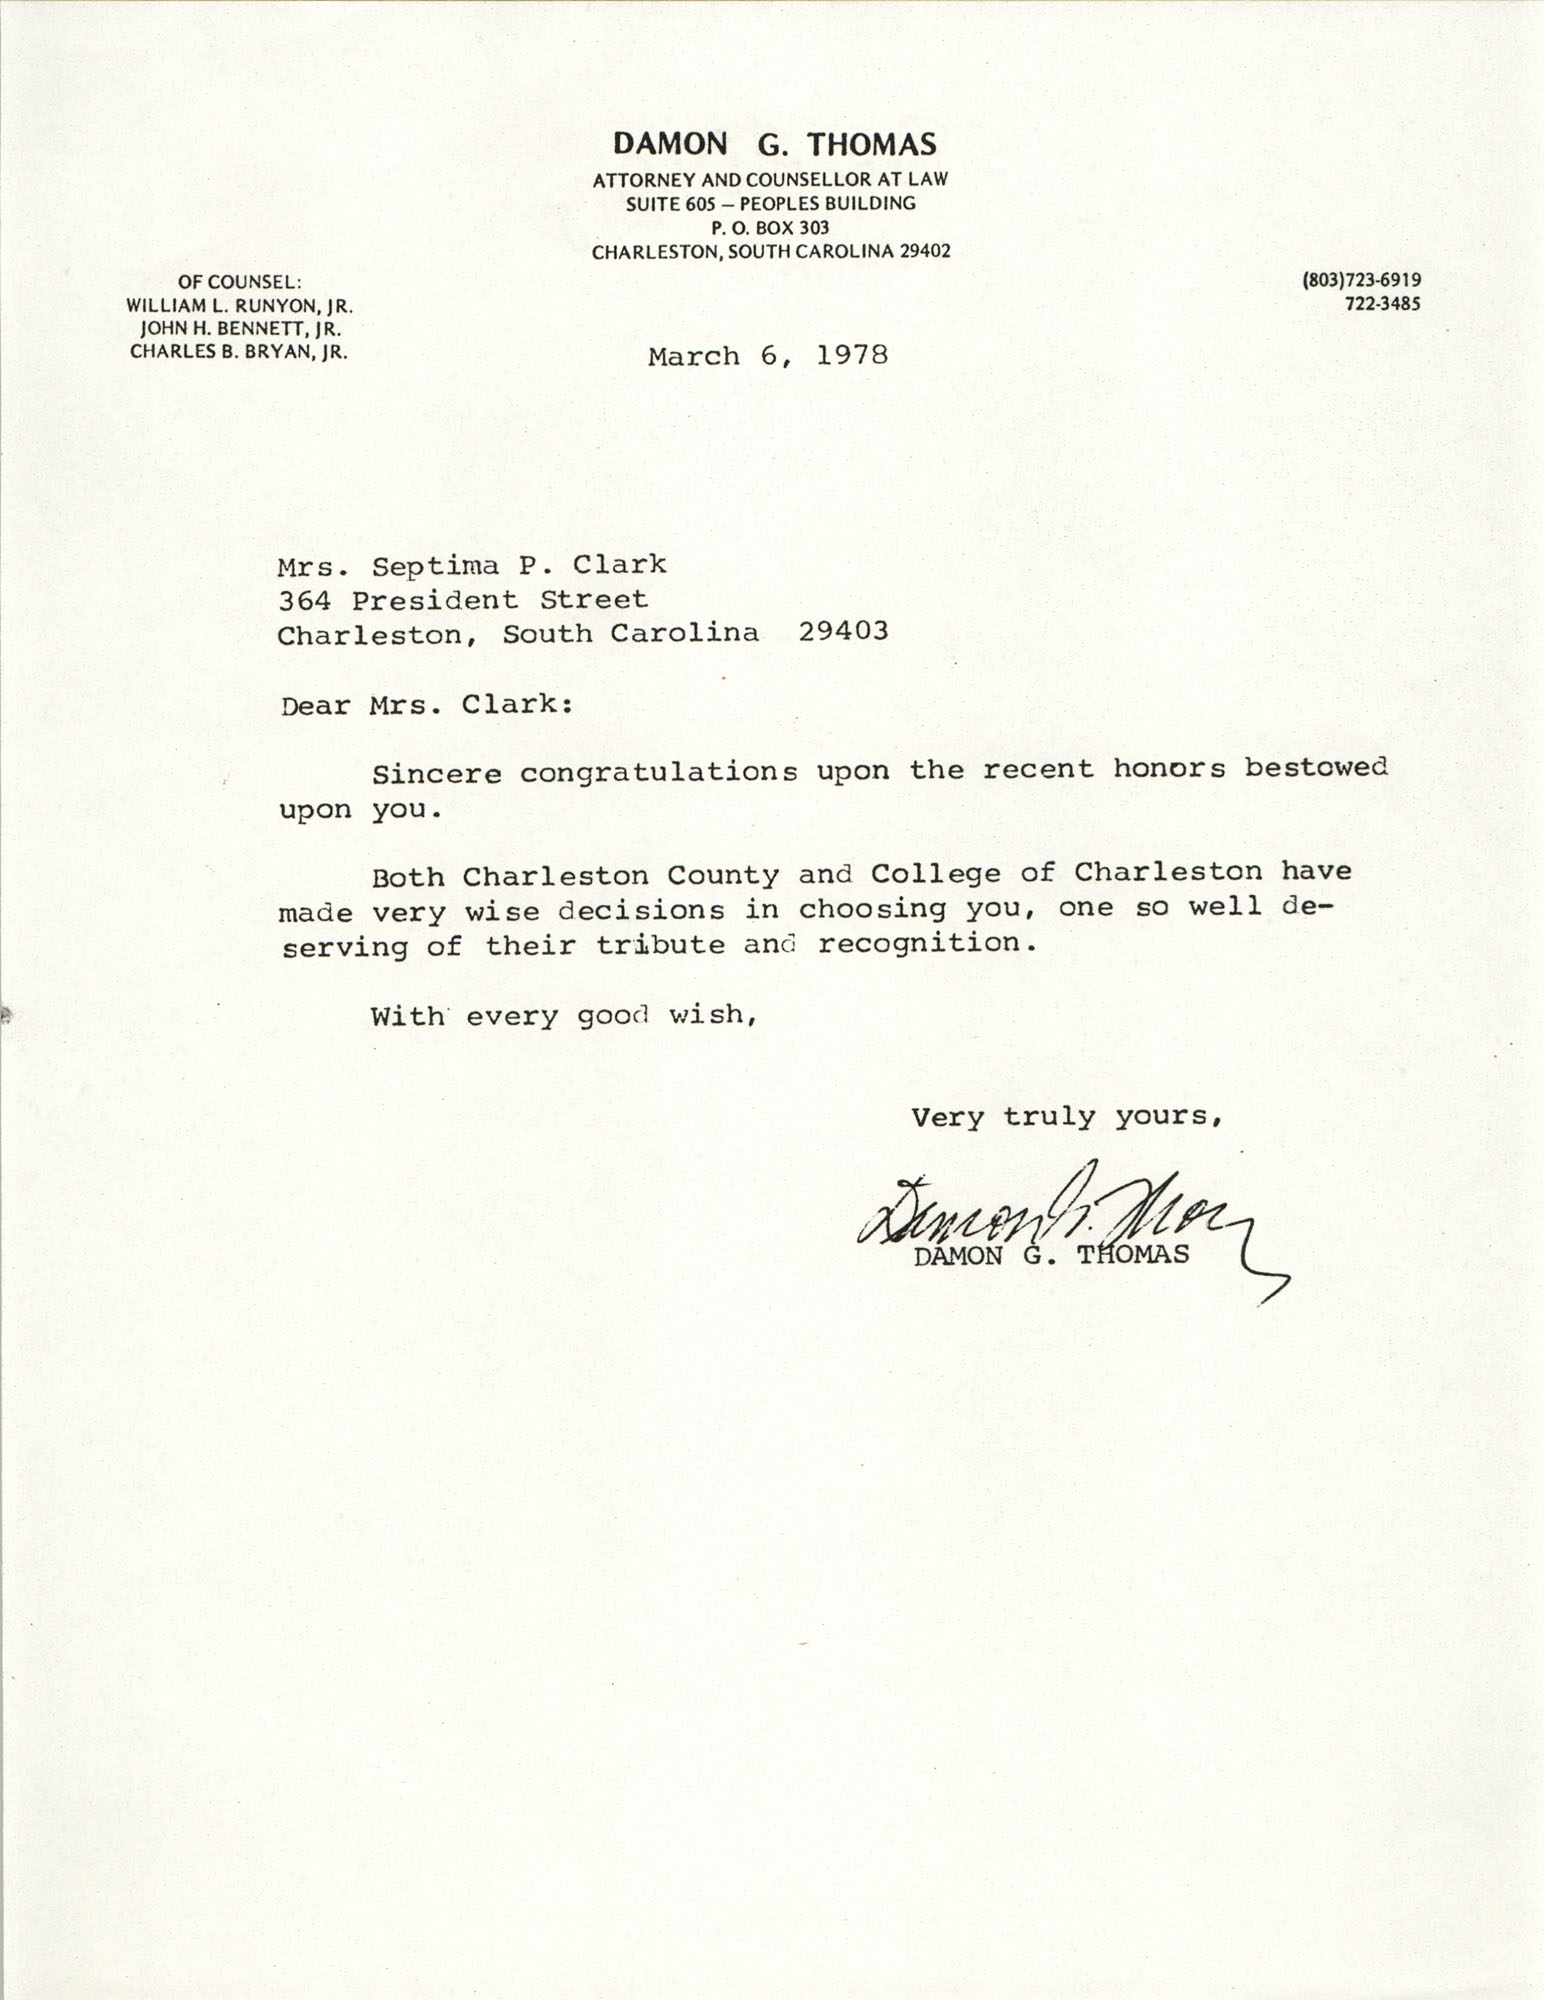 Letter from Damon G. Thomas to Septima P. Clark, March 6, 1978